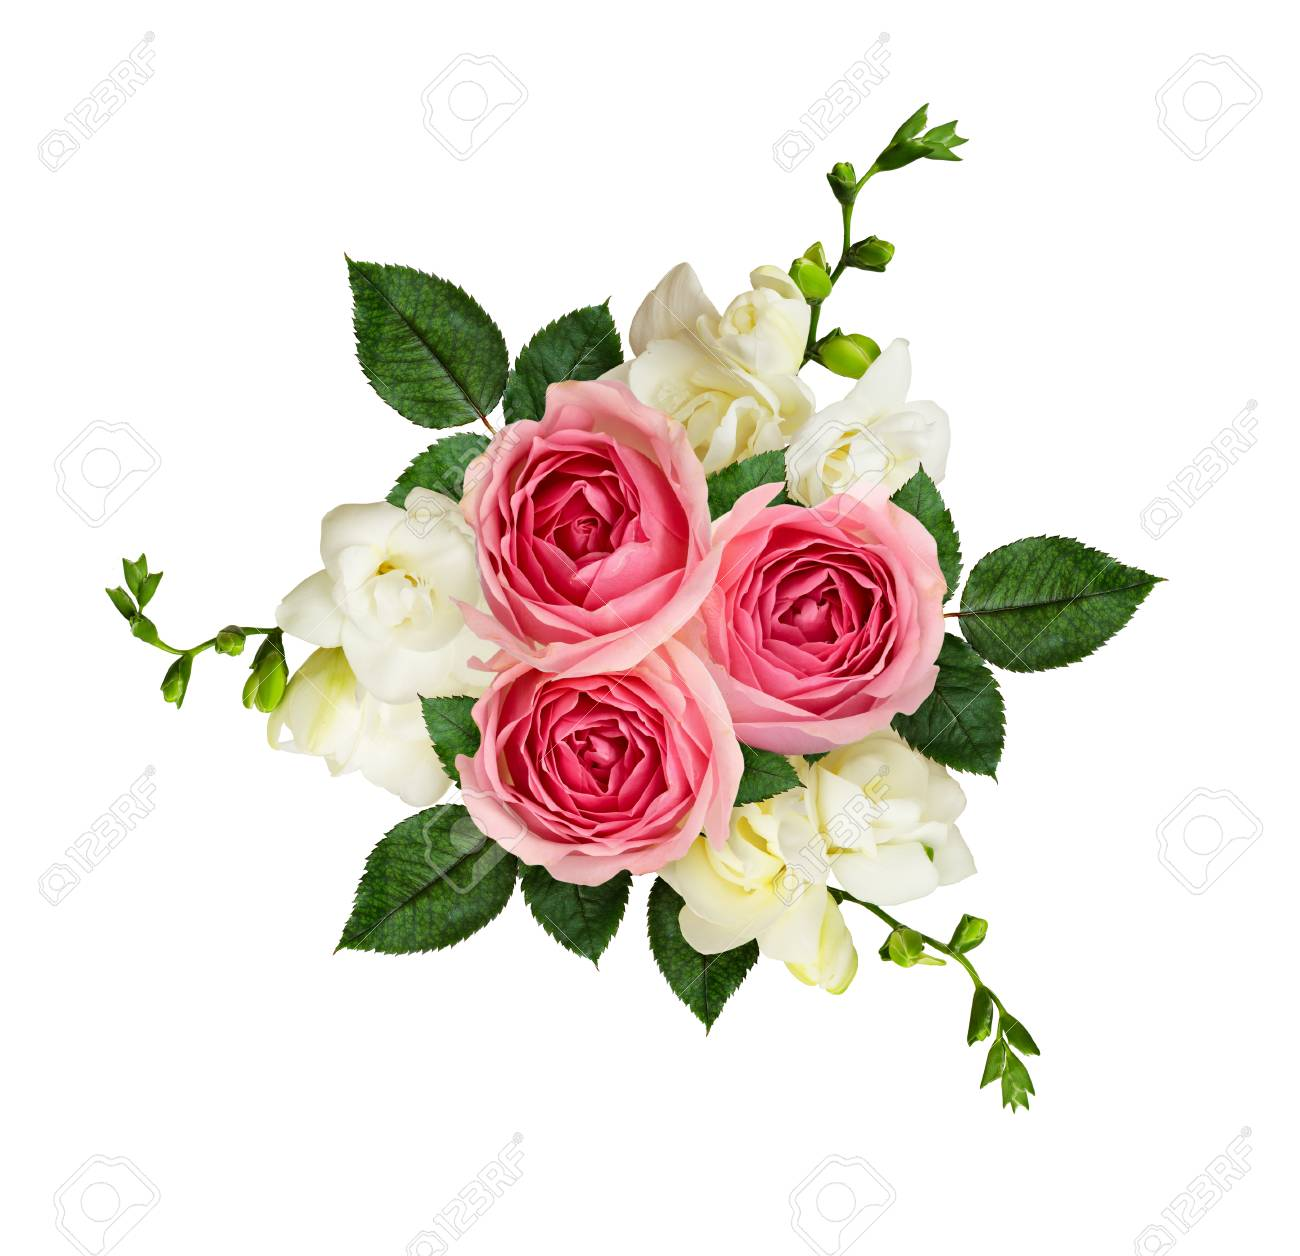 Pink Roses And Freesia Flowers In A Bouquet Isolated On White Stock Photo Picture And Royalty Free Image Image 95076596